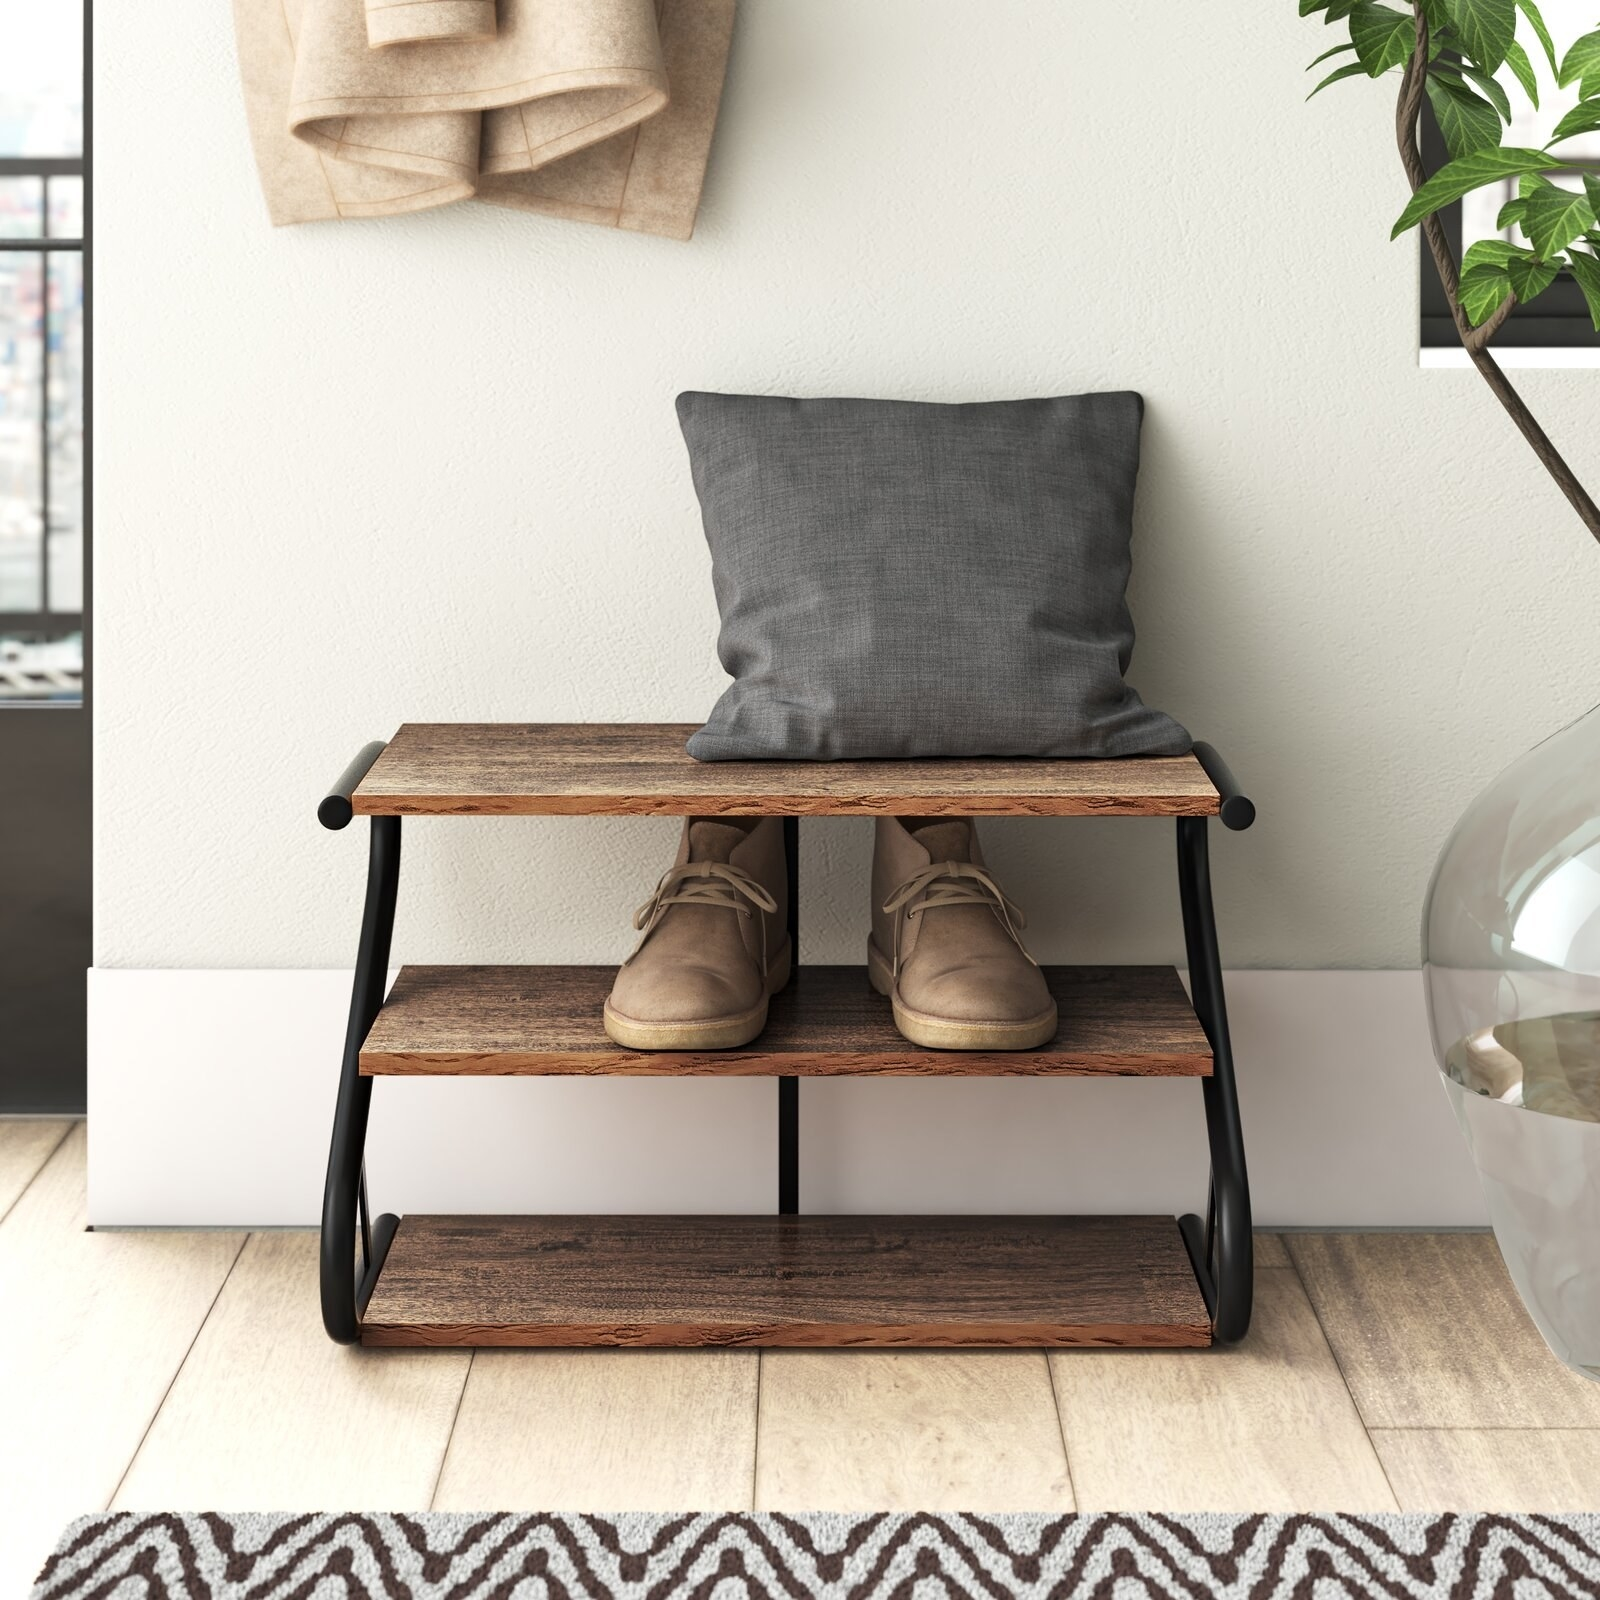 the 3-tier rustic rack with a pillow on the top rack, a pair of shoes in the middle, and nothing on the bottom